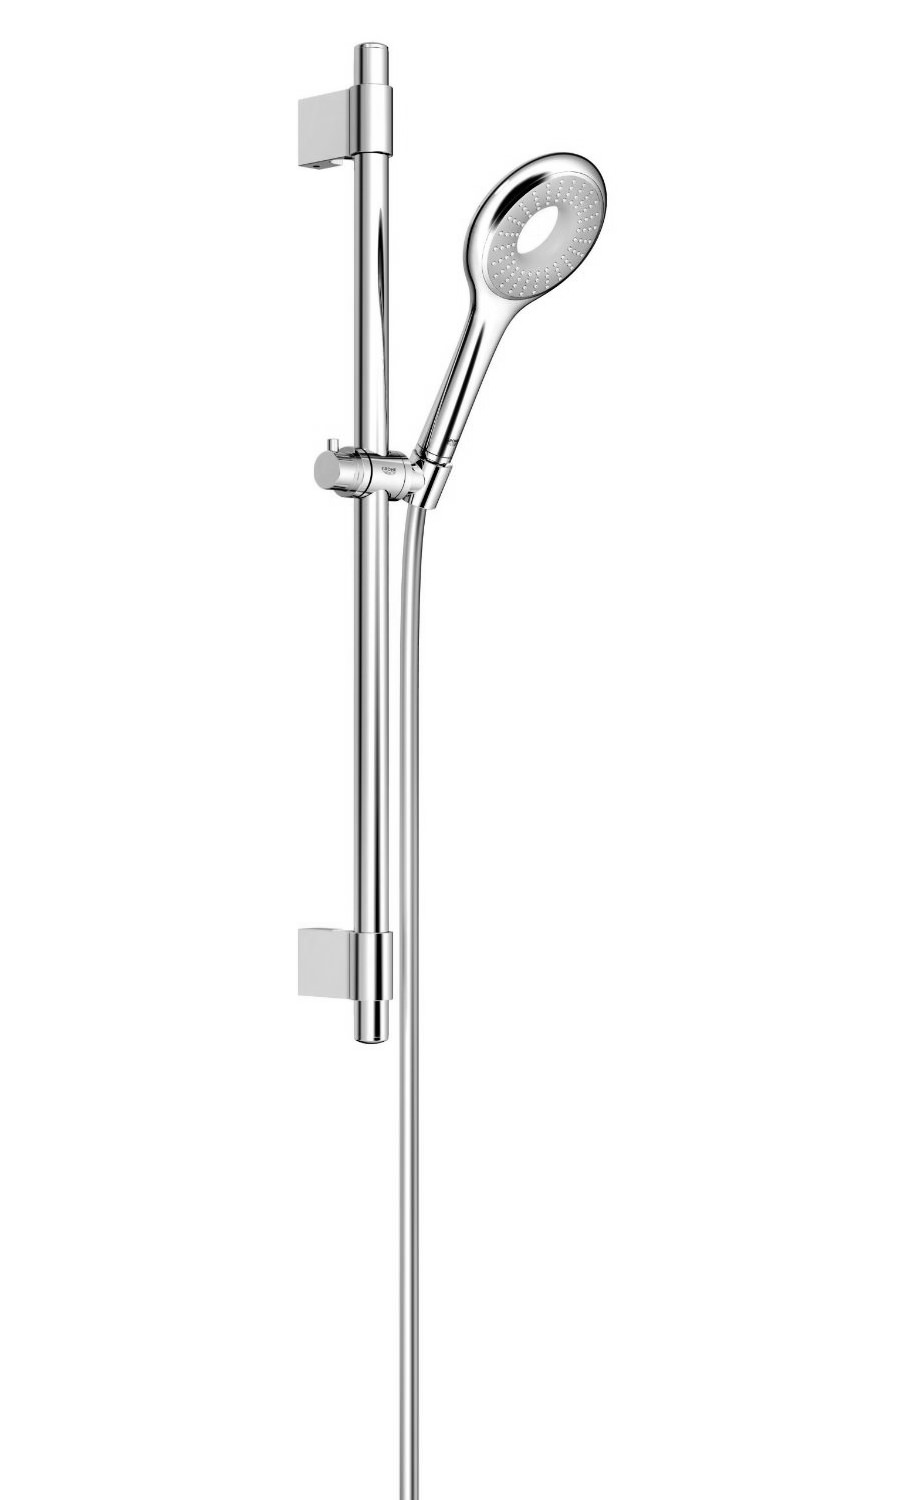 grohe rainshower icon 100 single spray pattern shower rail set. Black Bedroom Furniture Sets. Home Design Ideas